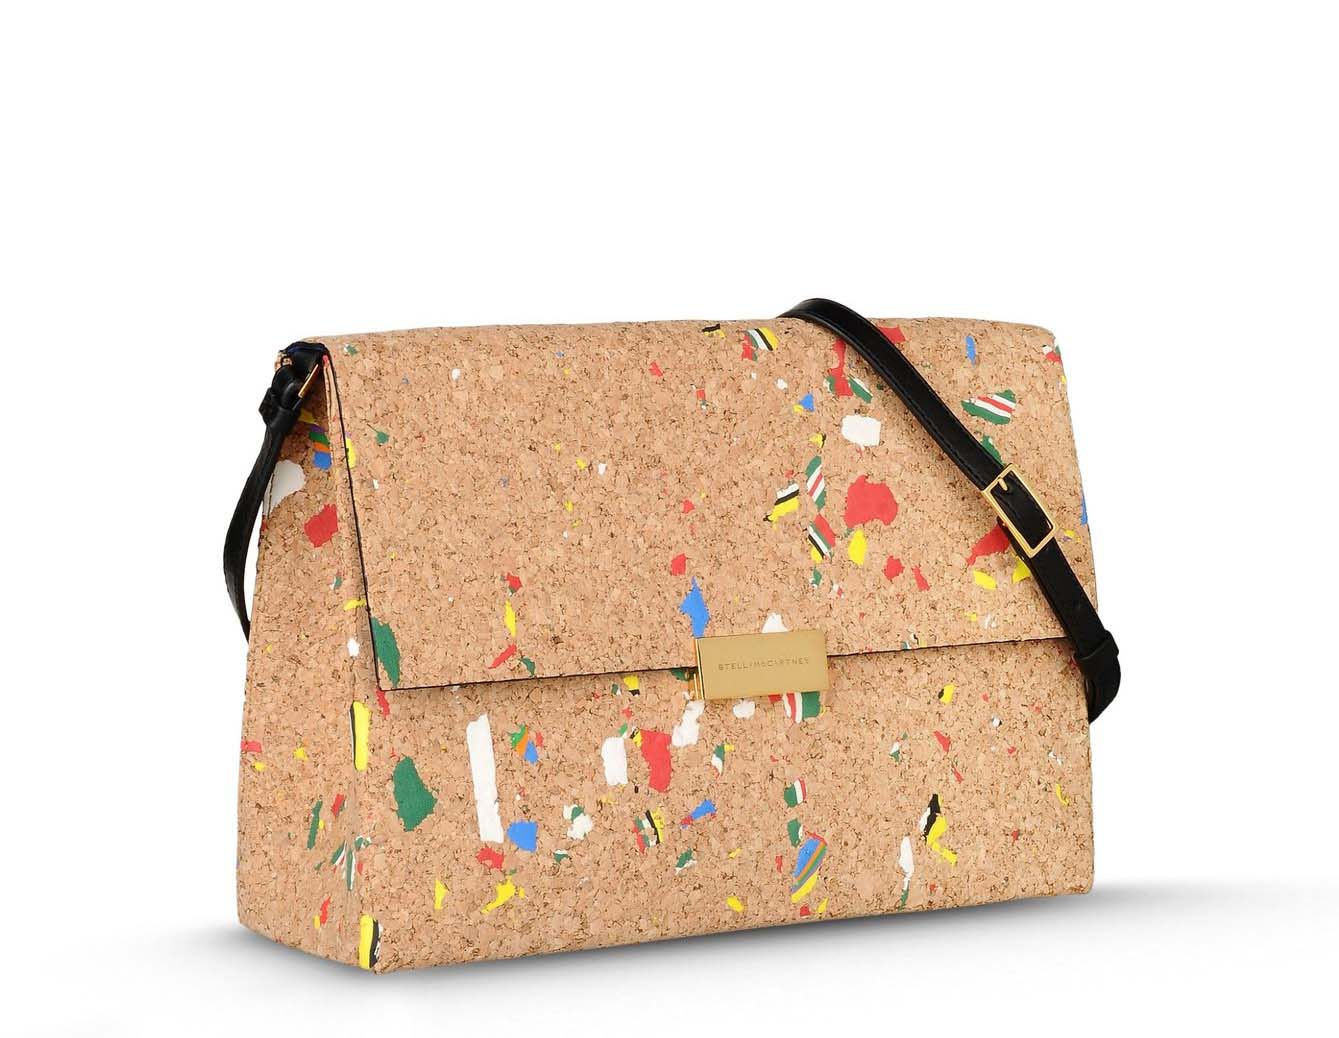 stella-mccartney-multicolor-beckett-cork-shoulder-bag-product-1-26208067-0-181853374-normal.jpg